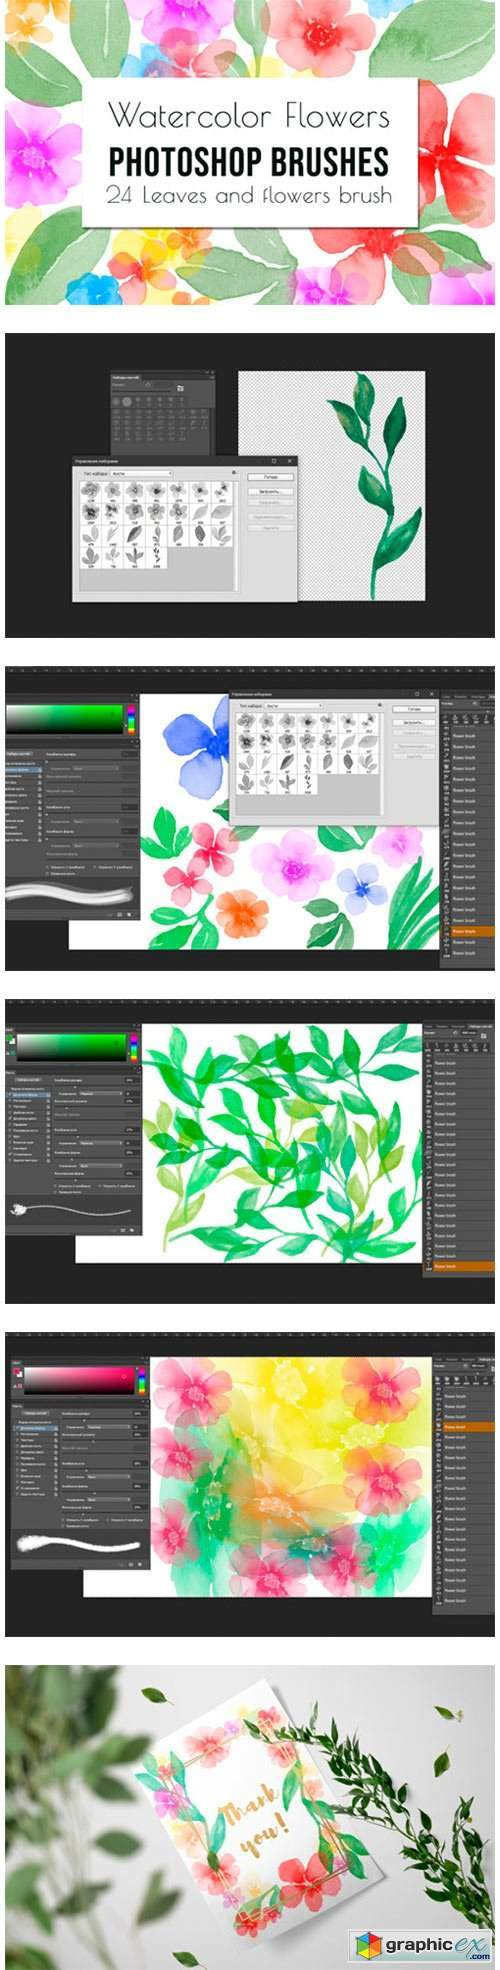 Watercolor Floral Brushes for Photoshop